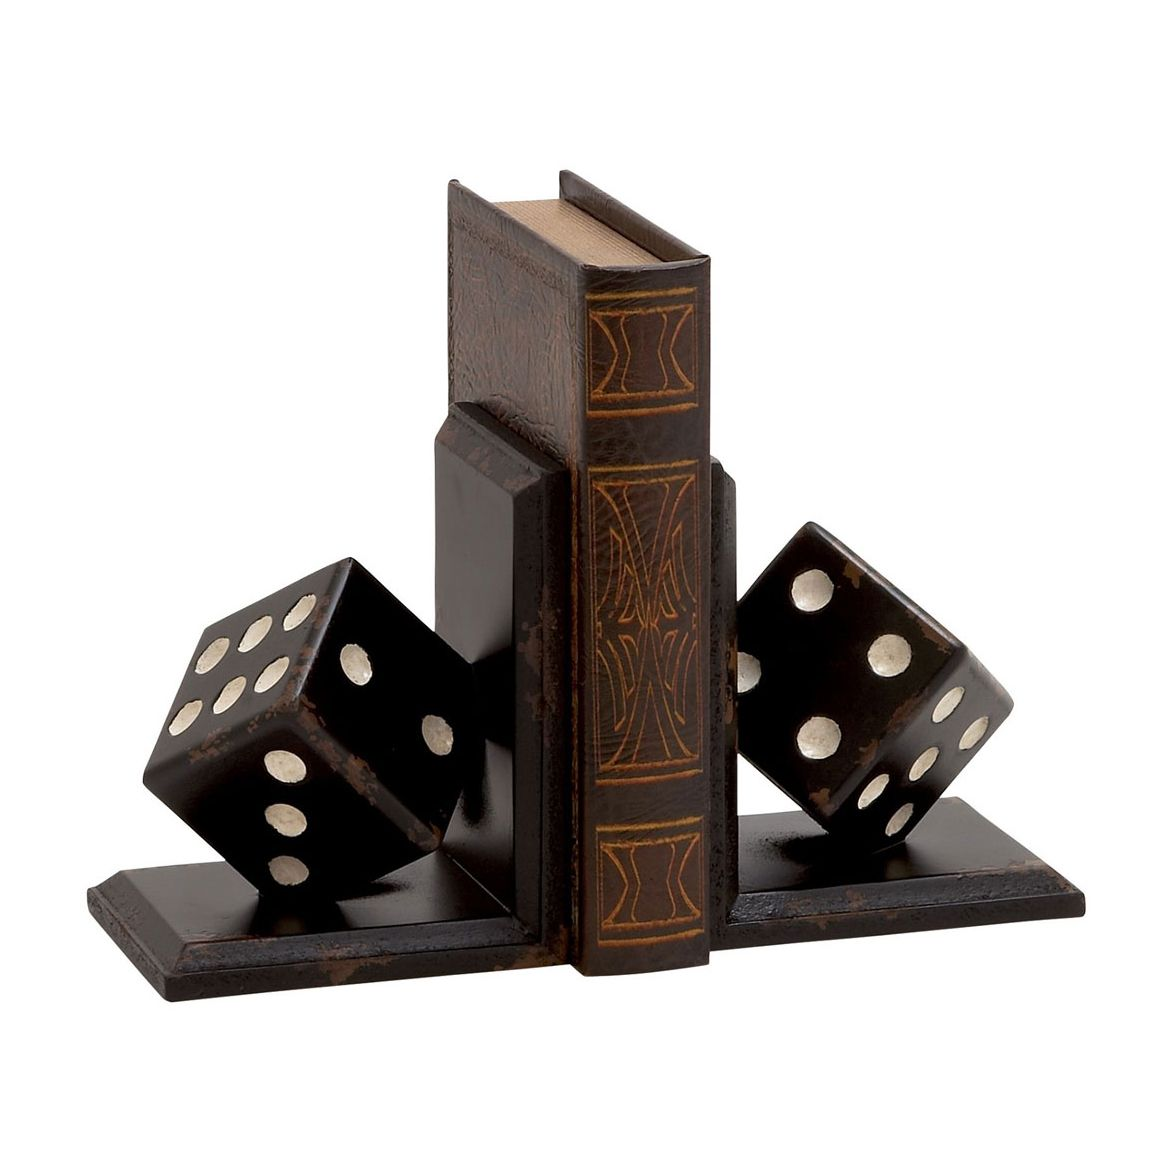 Play up your love of books and add a touch of casino-inspired character with the Play On Bookends. With the look of distressed wood, the polyresin pair feature angled dice, perfect for any luxe lounge ...  Find the Play On Bookends, as seen in the It's a Wonderful Mid-Century Life Collection at http://dotandbo.com/collections/its-a-wonderful-mid-century-life?utm_source=pinterest&utm_medium=organic&db_sku=104521